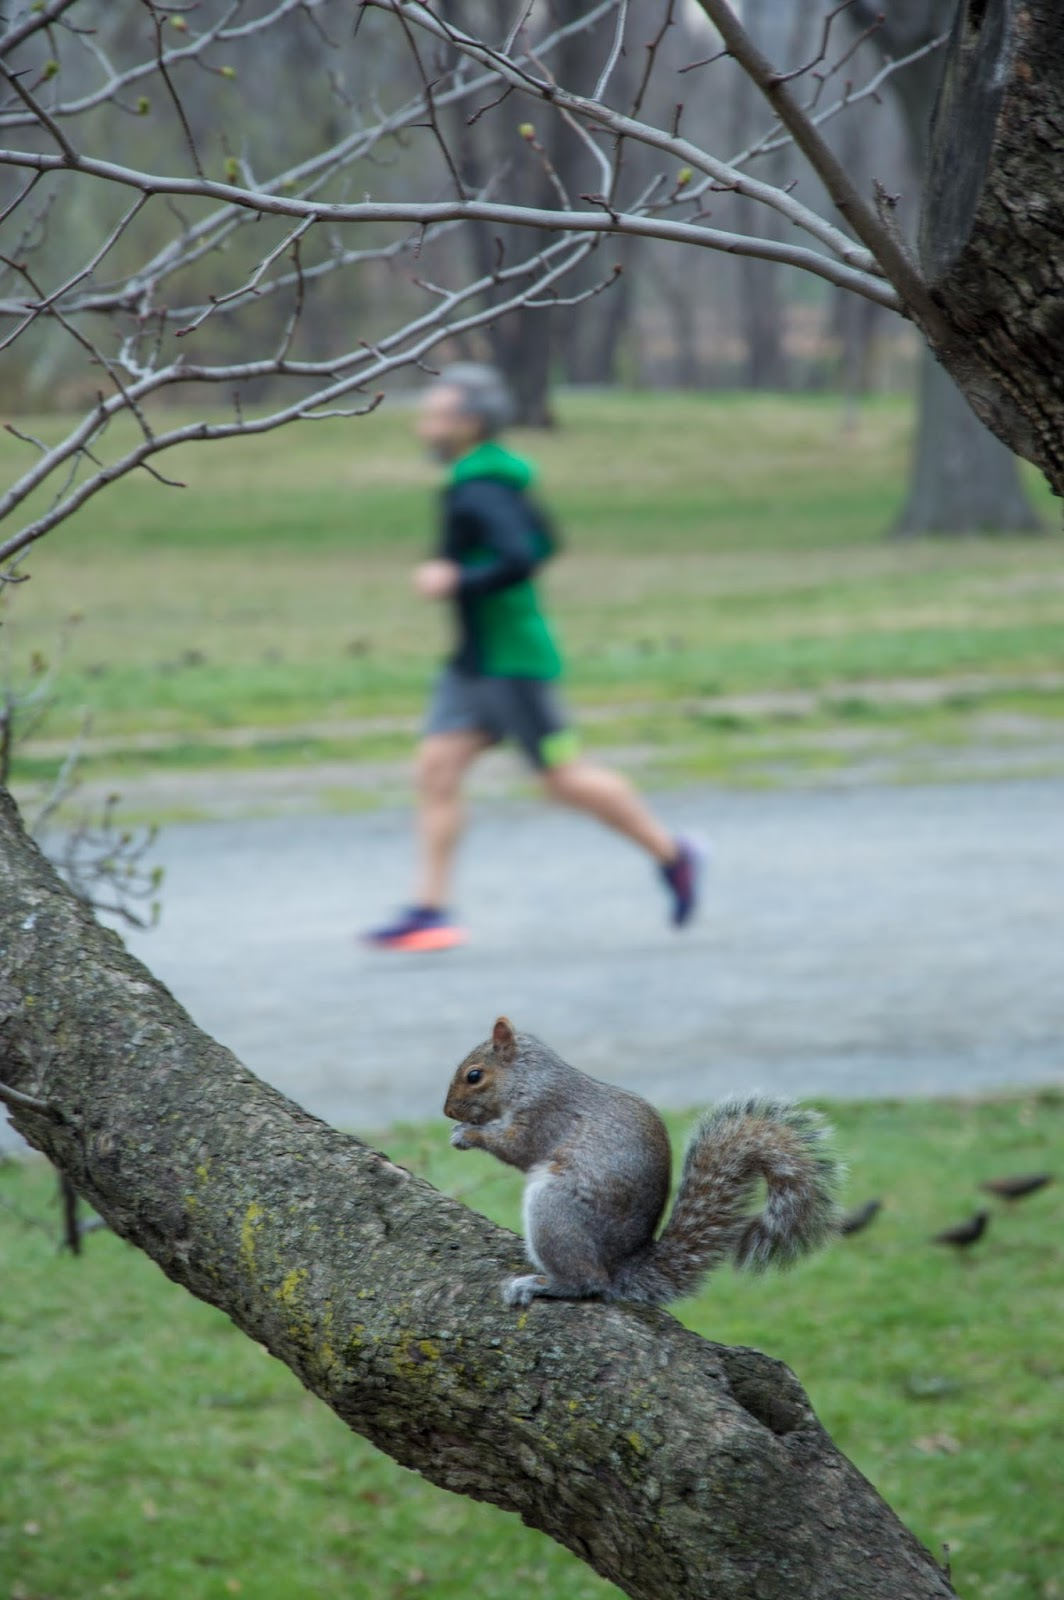 Squirrel in the Central Park